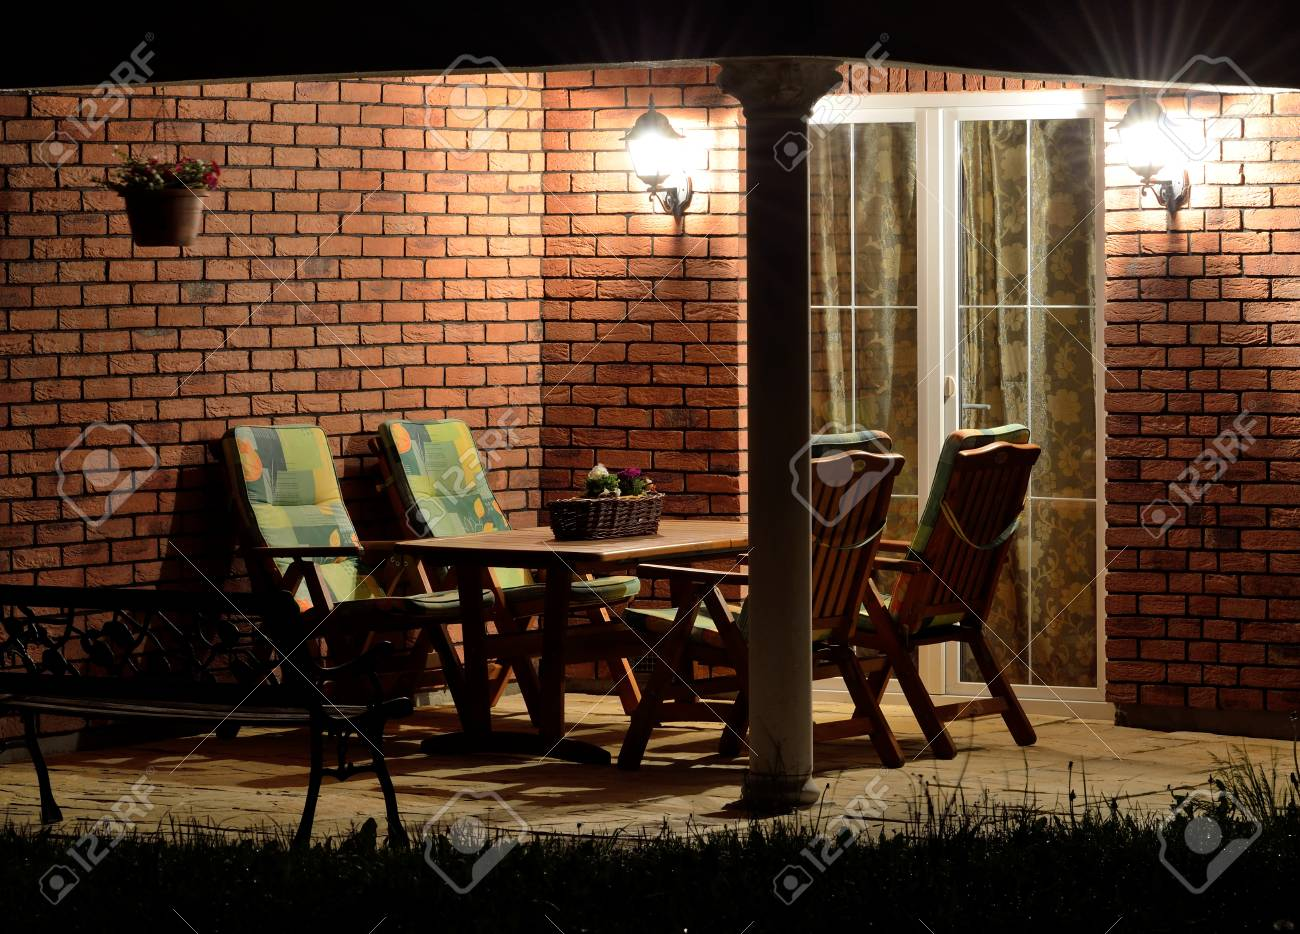 Bricks furniture Sofa Modern House Garden Terrace patio Lined With Bricks With Garden Furniture At Night Lighting Tech Explorist Modern House Garden Terrace patio Lined With Bricks With Garden